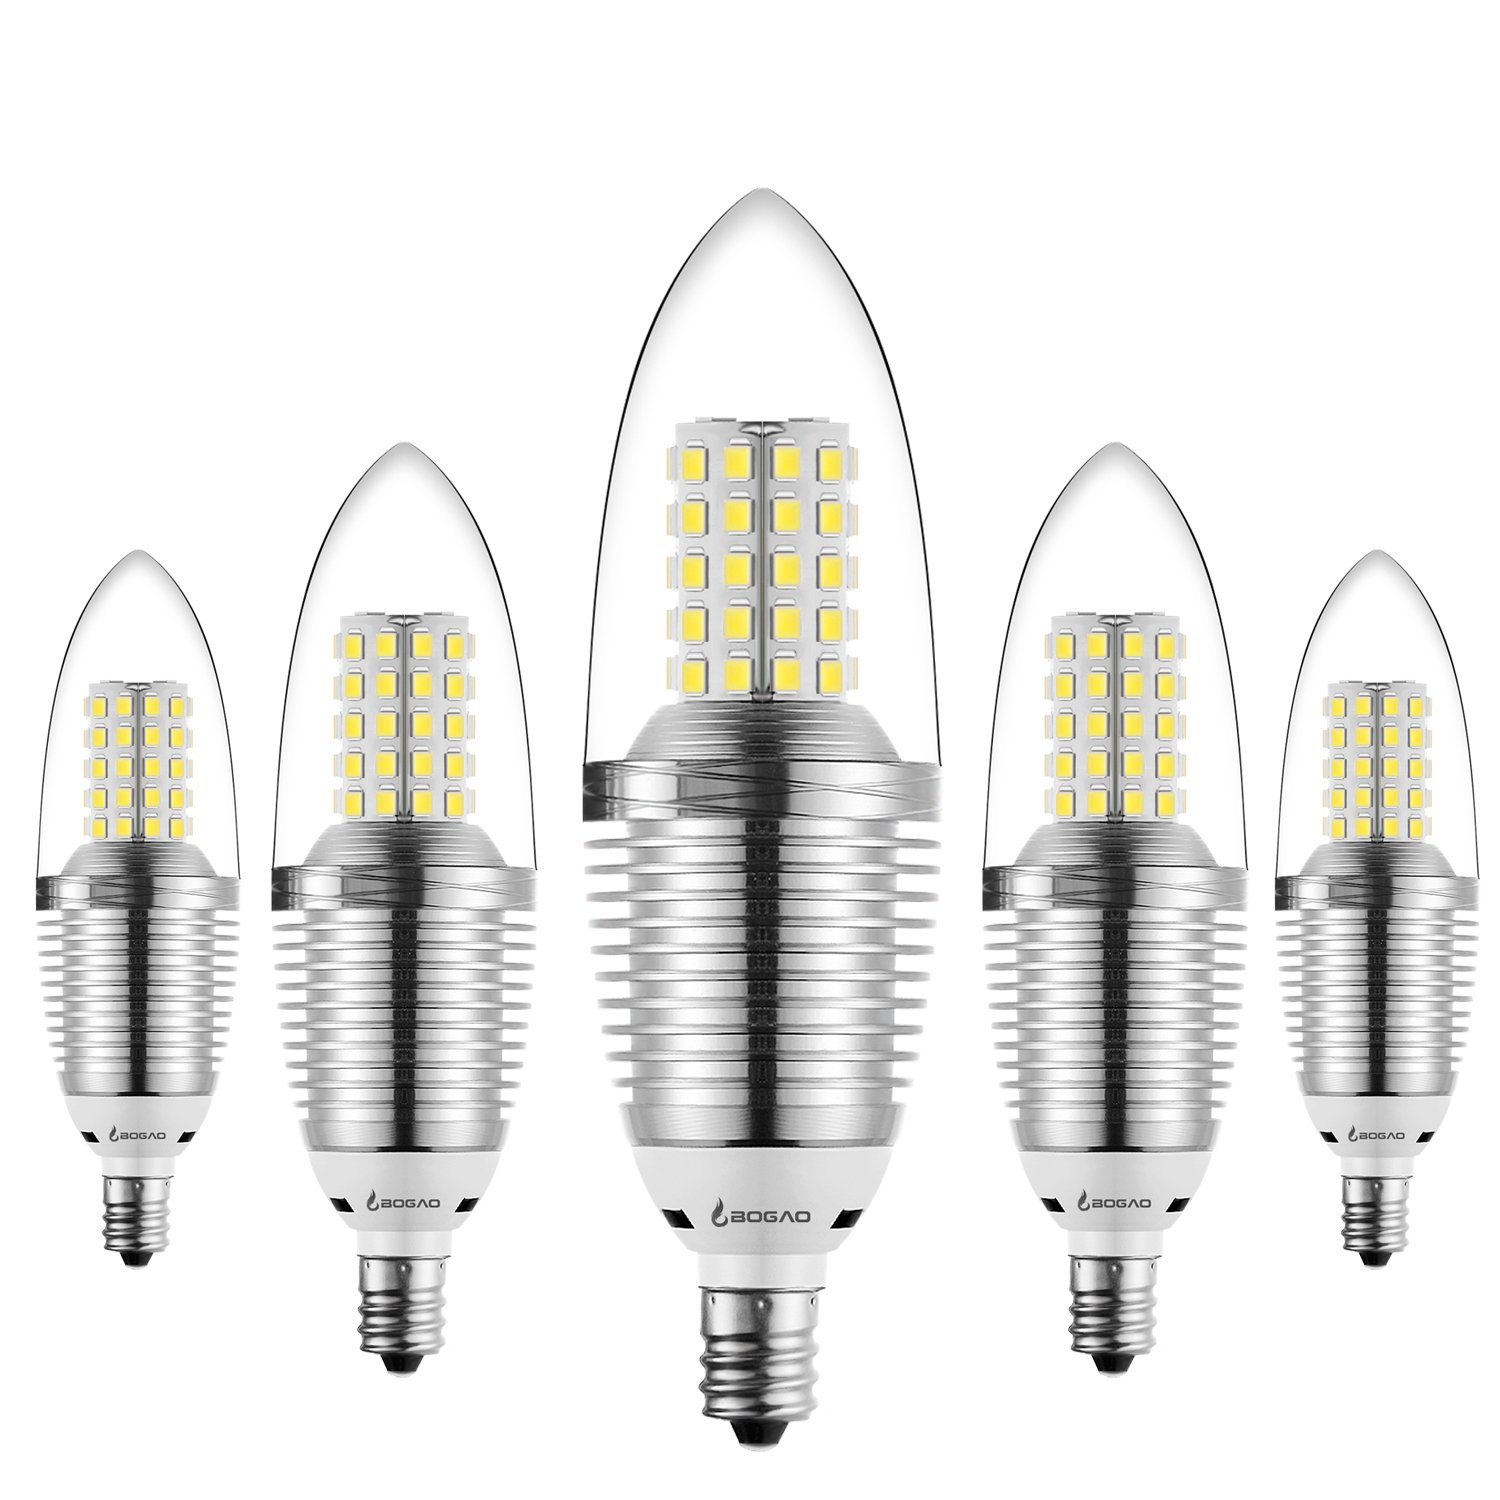 bogao 5 pack led candelabra bulb 12w daylight led candle bulbs watt light bulbs equivalent e12 candelabra base lumens led lights